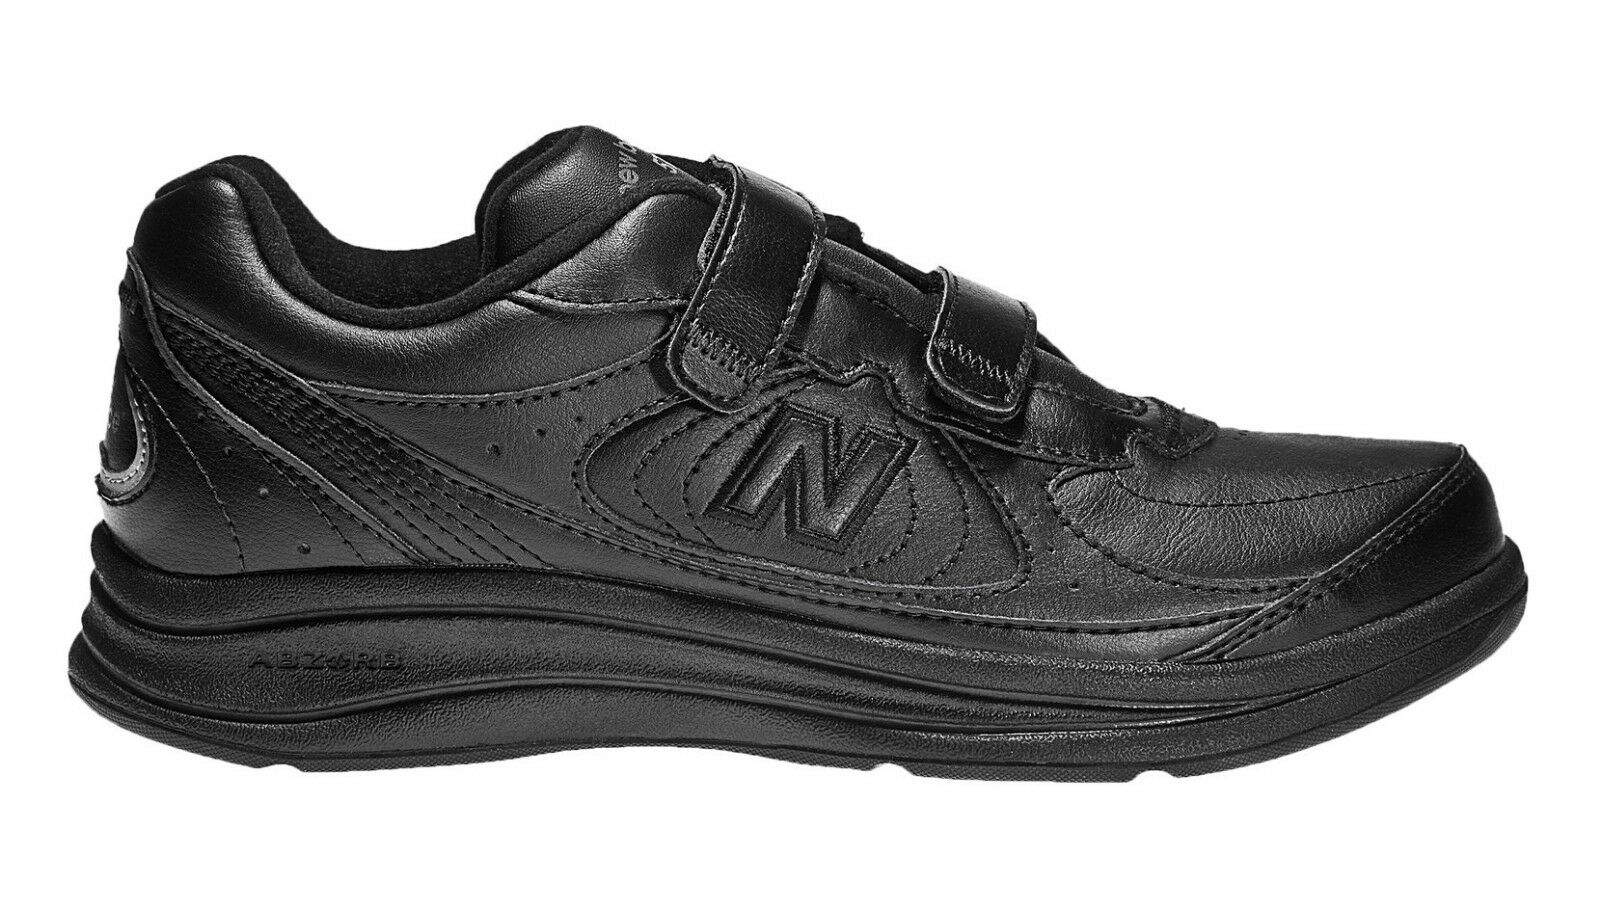 New Balance MW577VK Men's Hook and Loop 577 Black Leather Walking shoes